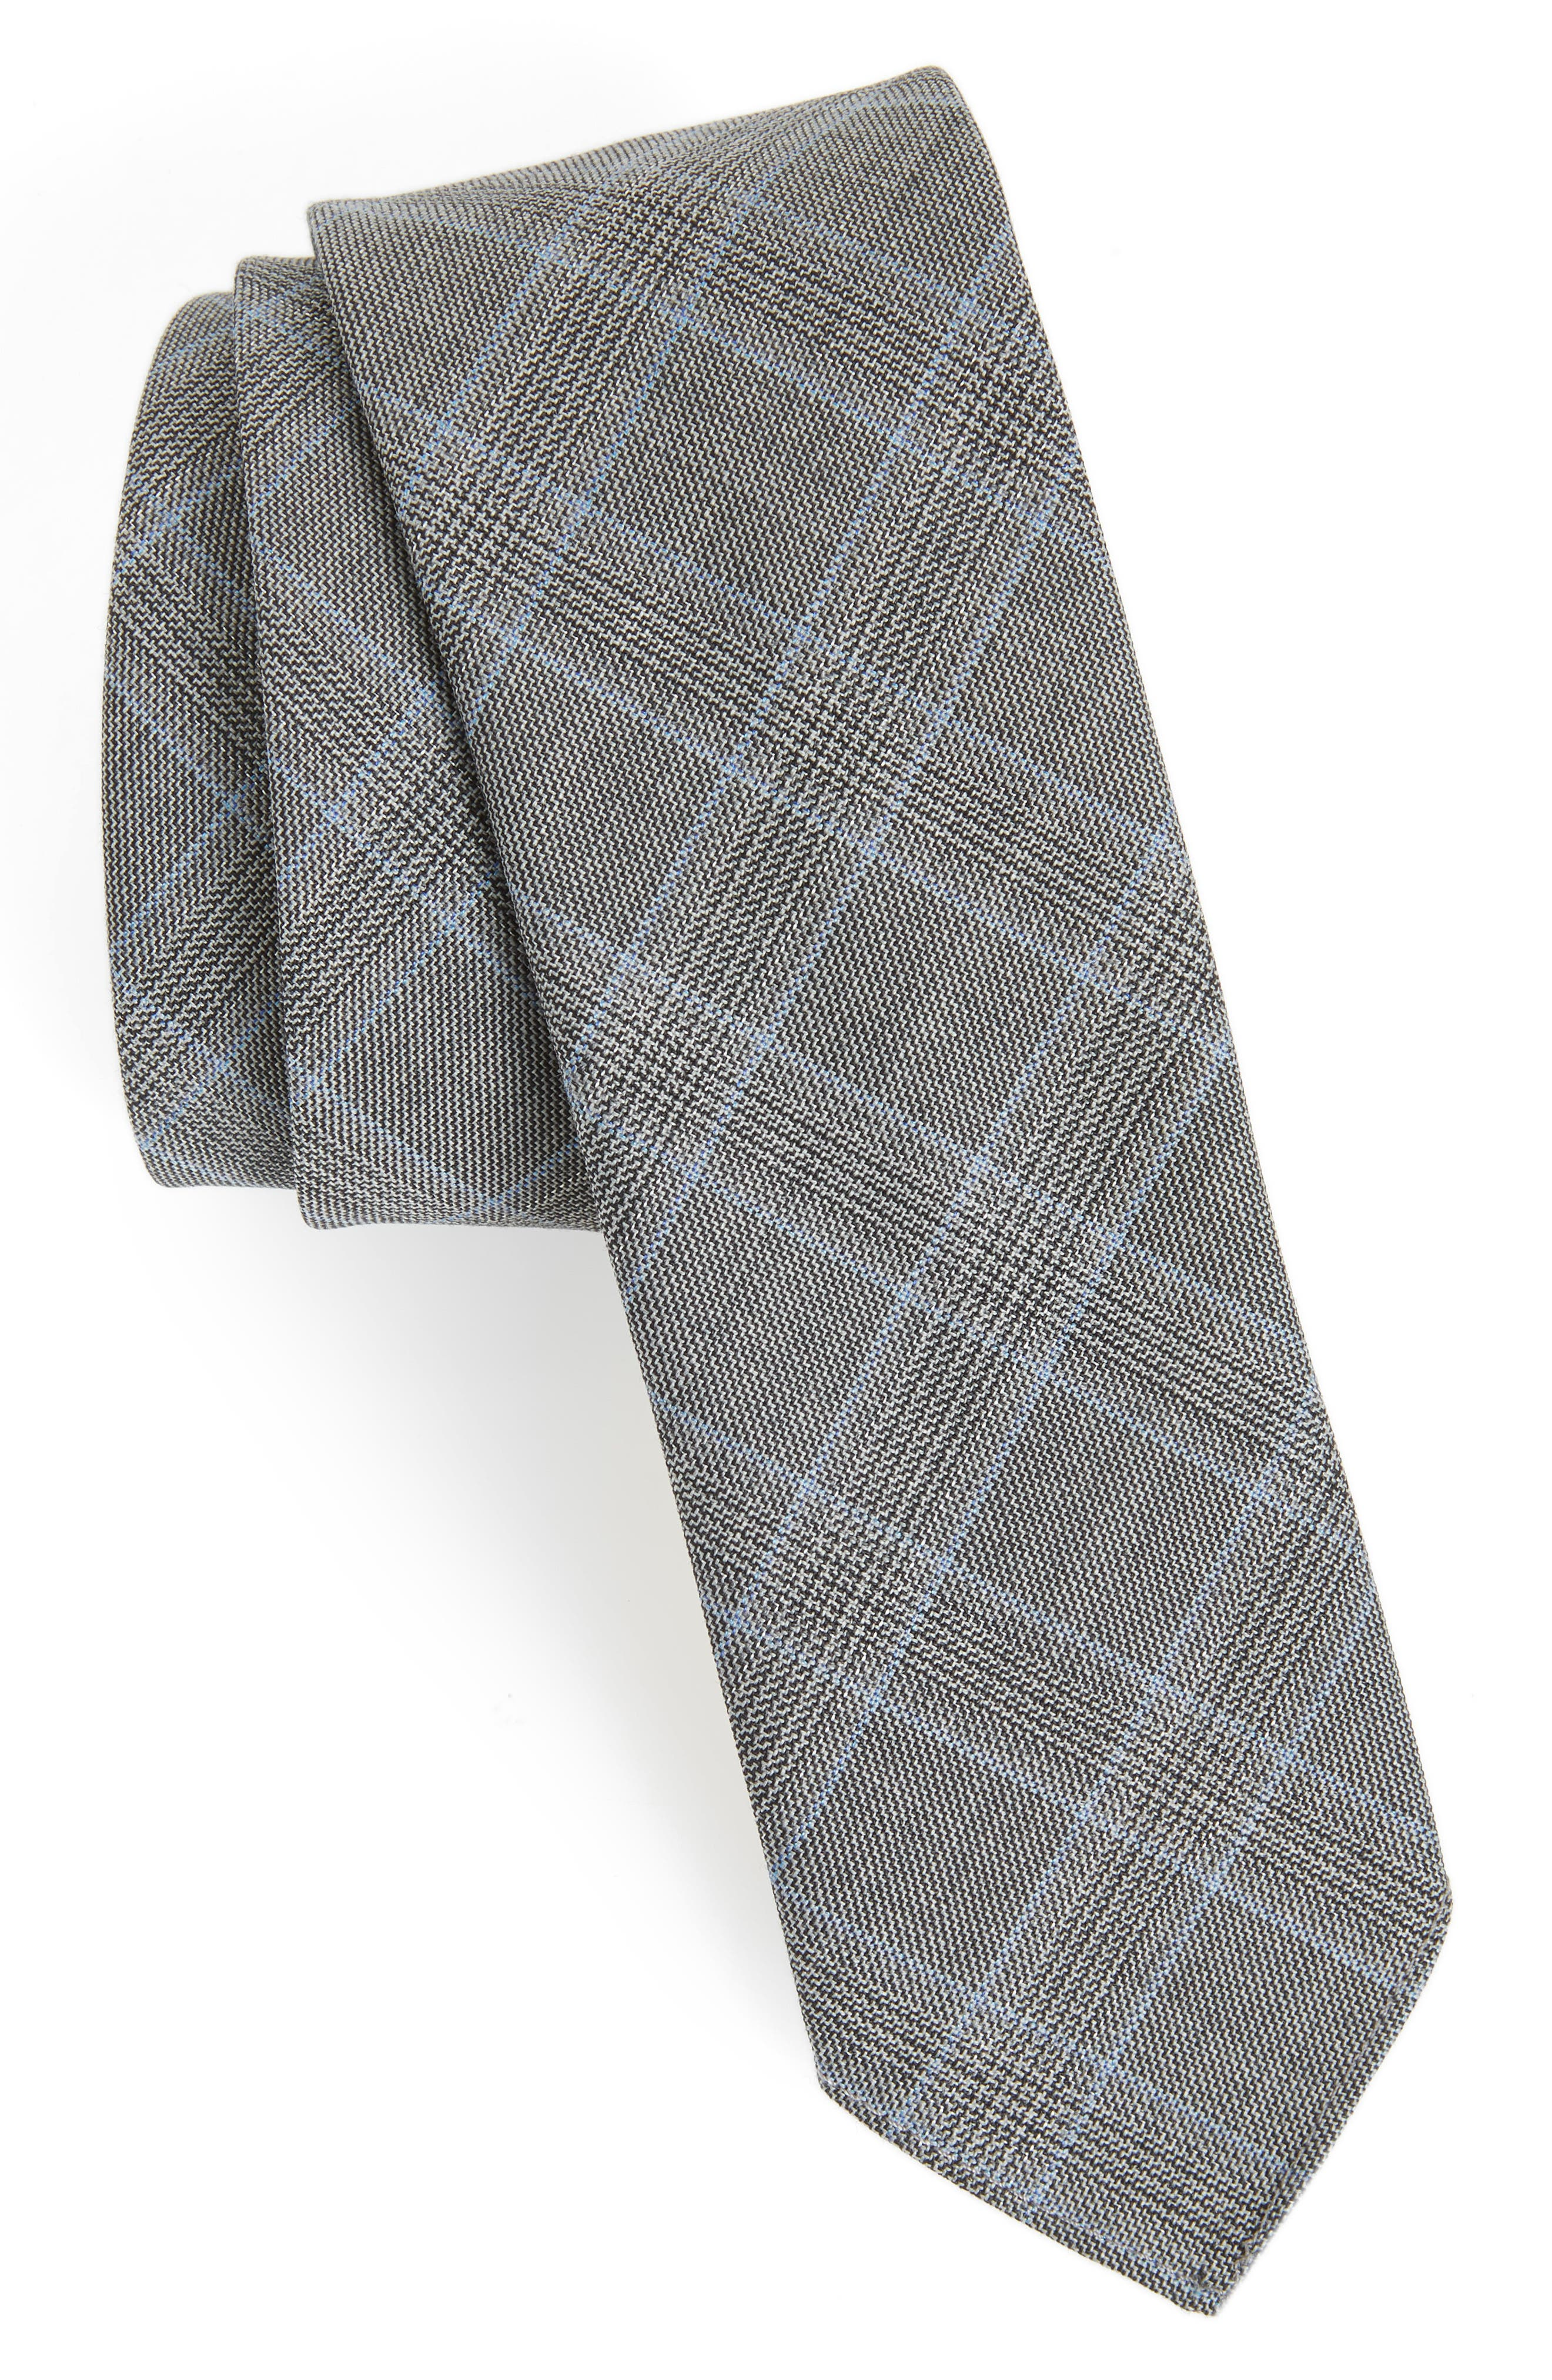 Plaid Wool Tie,                             Main thumbnail 1, color,                             Open Grey